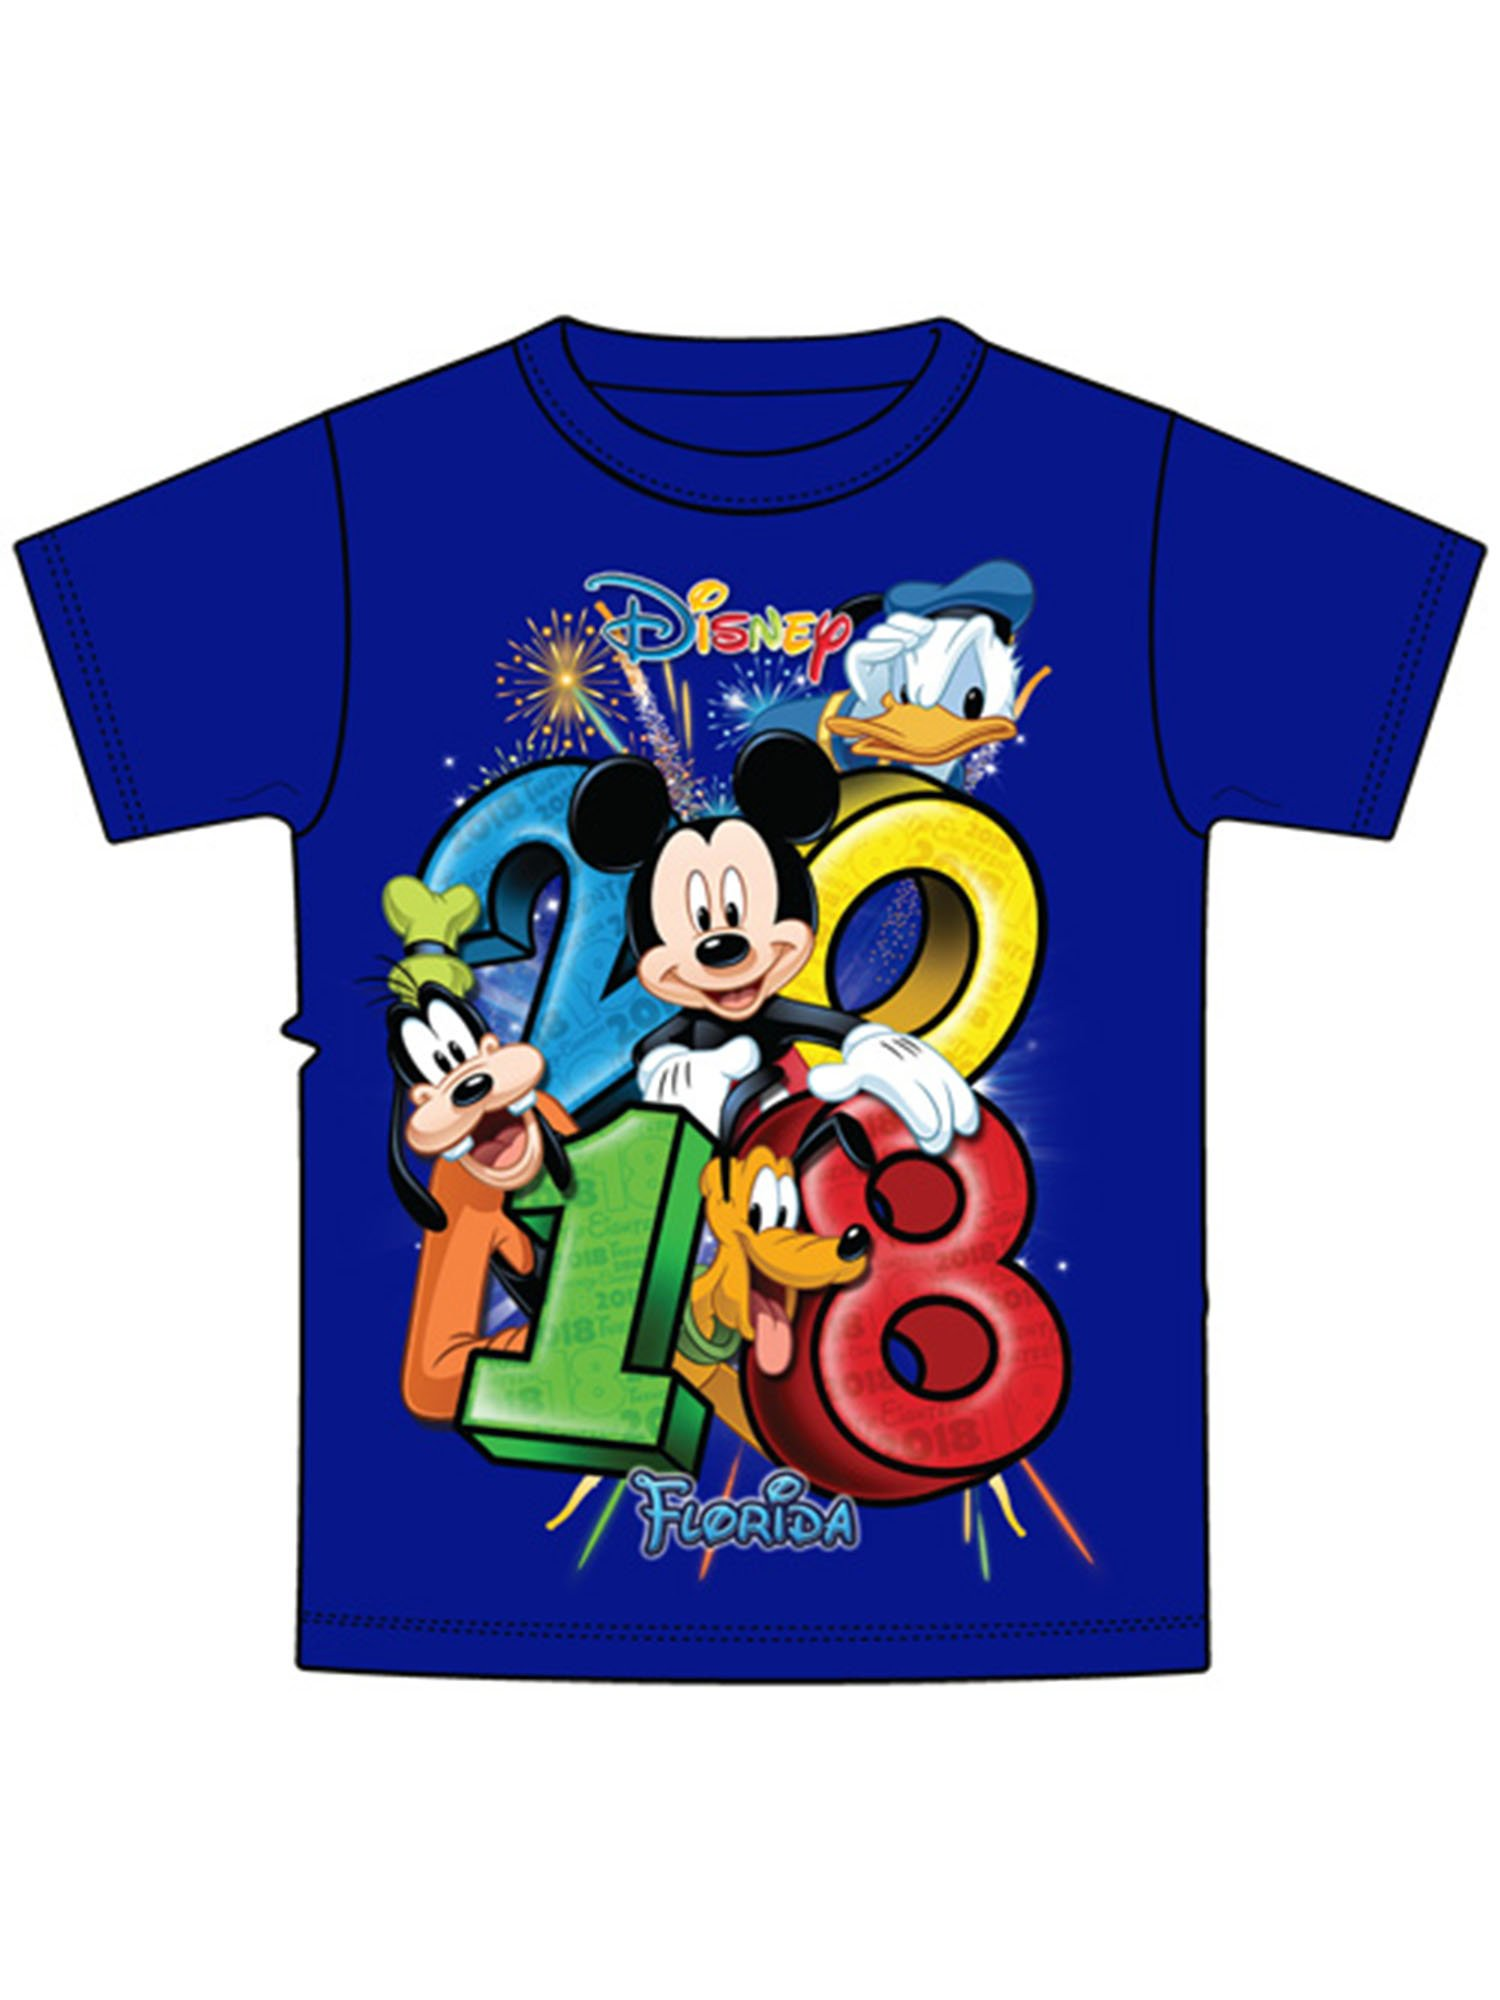 Disney Toddler 2018 Stacked Goofy Mickey Donald Pluto Group (Fl Namedrop) 3T Tee